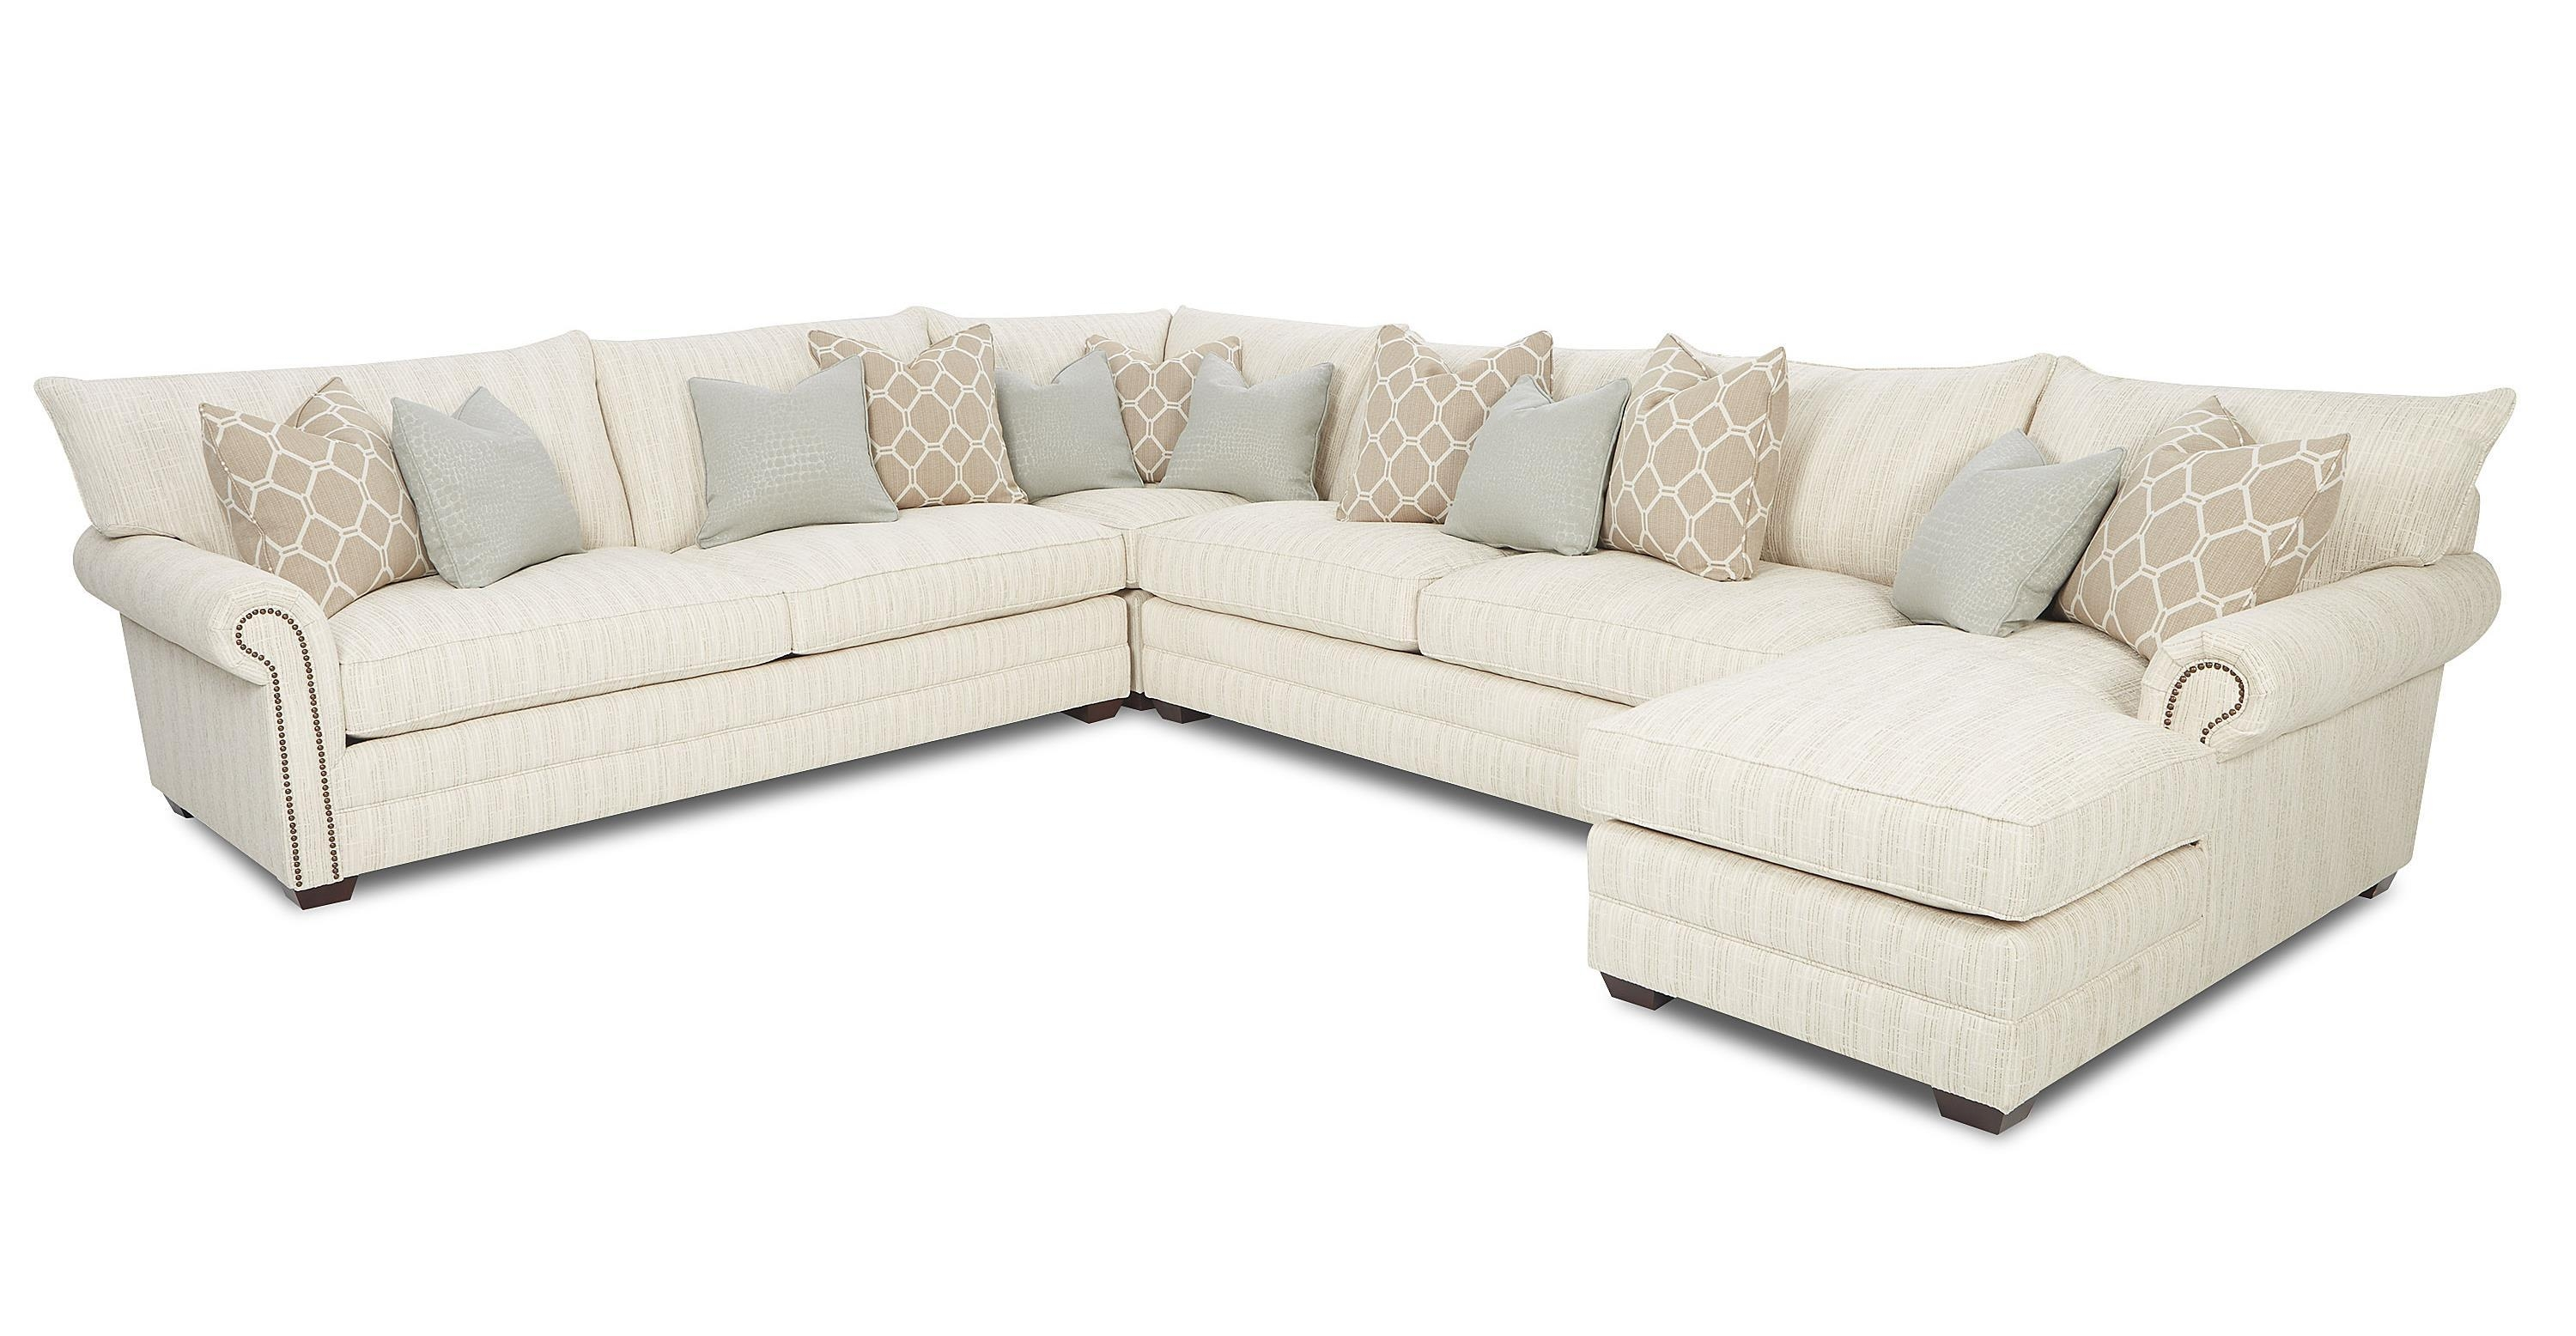 Traditional Sectional Sofa With Nailhead Trim And Chaise Lounge With Regard To Traditional Sectional Sofas (Image 16 of 20)